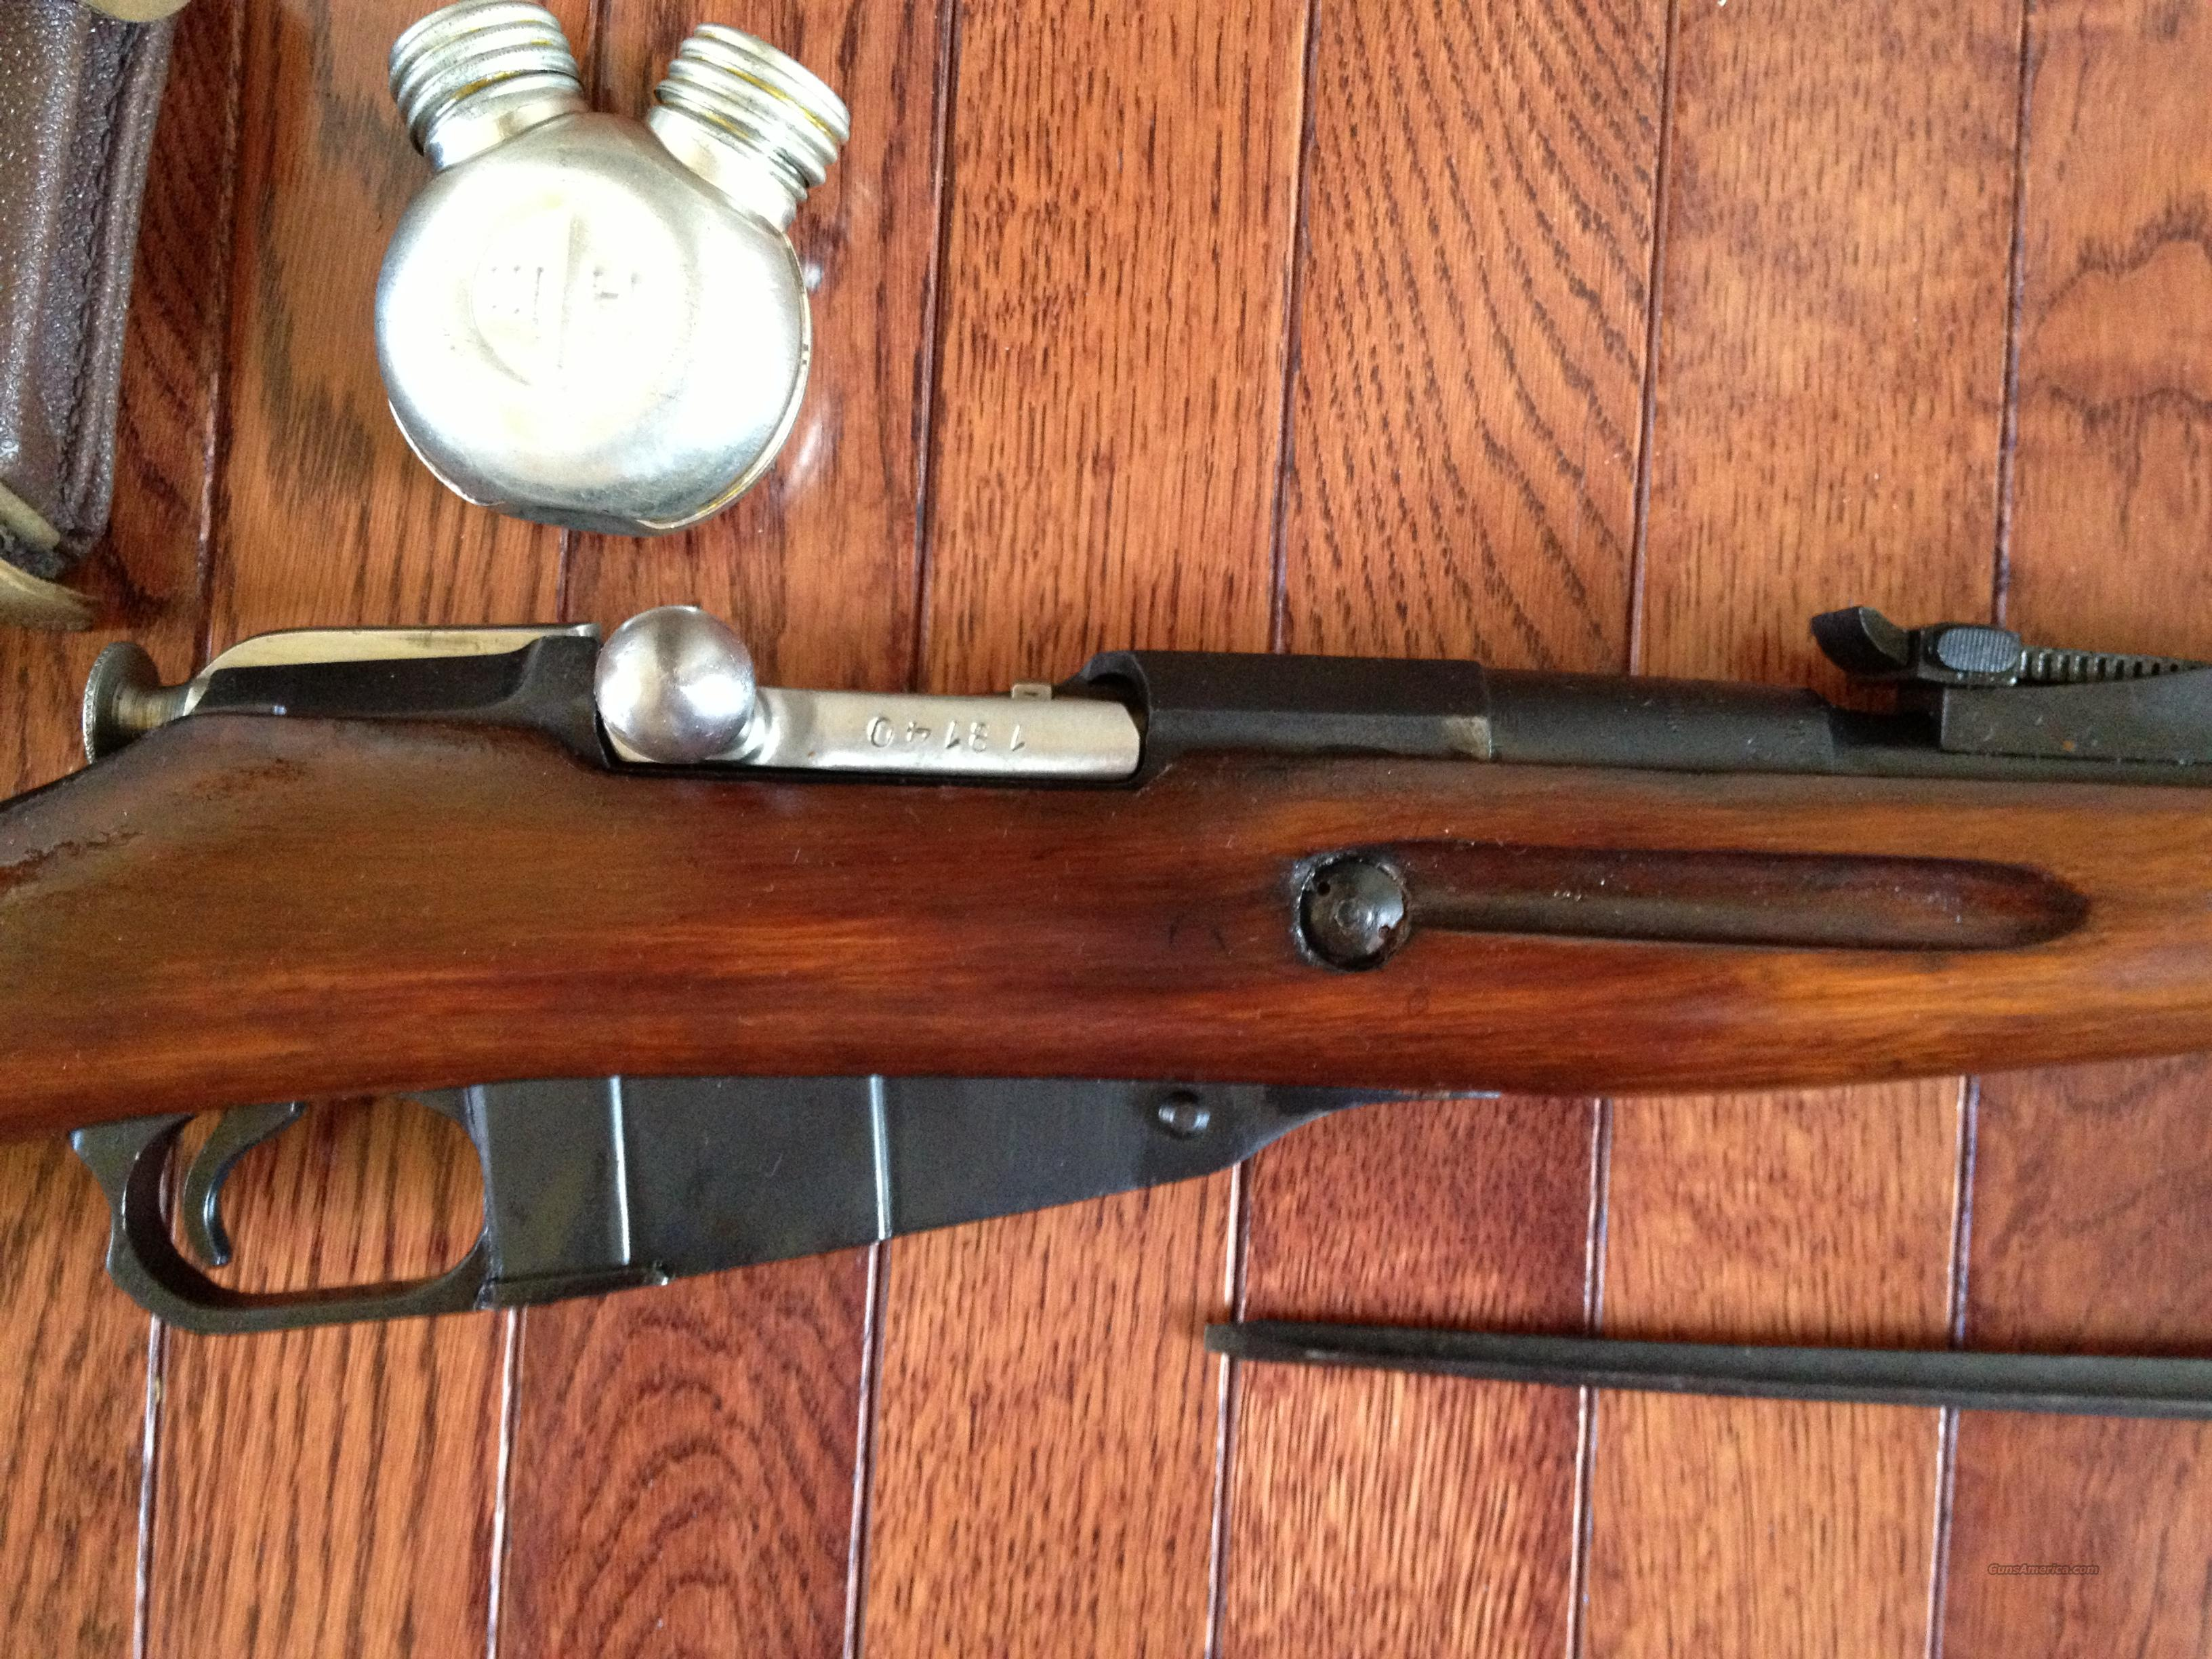 Memorial Day Sale ! Reduced $75!!  1927 SPECIAL HEX SHAPED RECEIVER! Premium Collector Grade A++ Matching Serial Numbers** WORLD WAR II ISSUE **Russian 1891/30 7.62x54R  Mosin Nagant Rifle  Guns > Rifles > Mosin-Nagant Rifles/Carbines